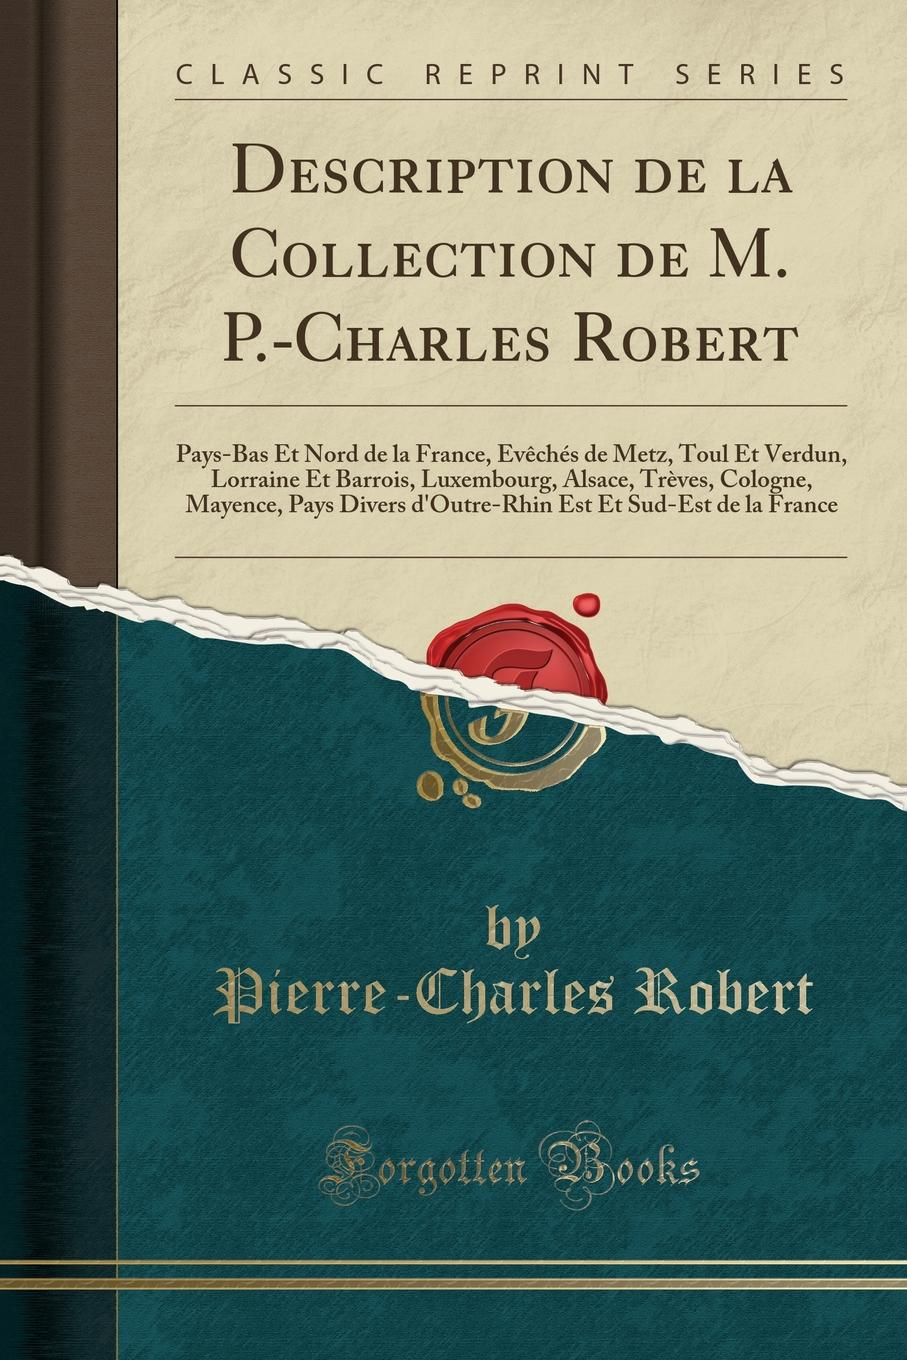 Description de la Collection de M. P.-Charles Robert. Pays-Bas Et Nord de la France, Eveches de Metz, Toul Et Verdun, Lorraine Et Barrois, Luxembourg, Alsace, Treves, Cologne, Mayence, Pays